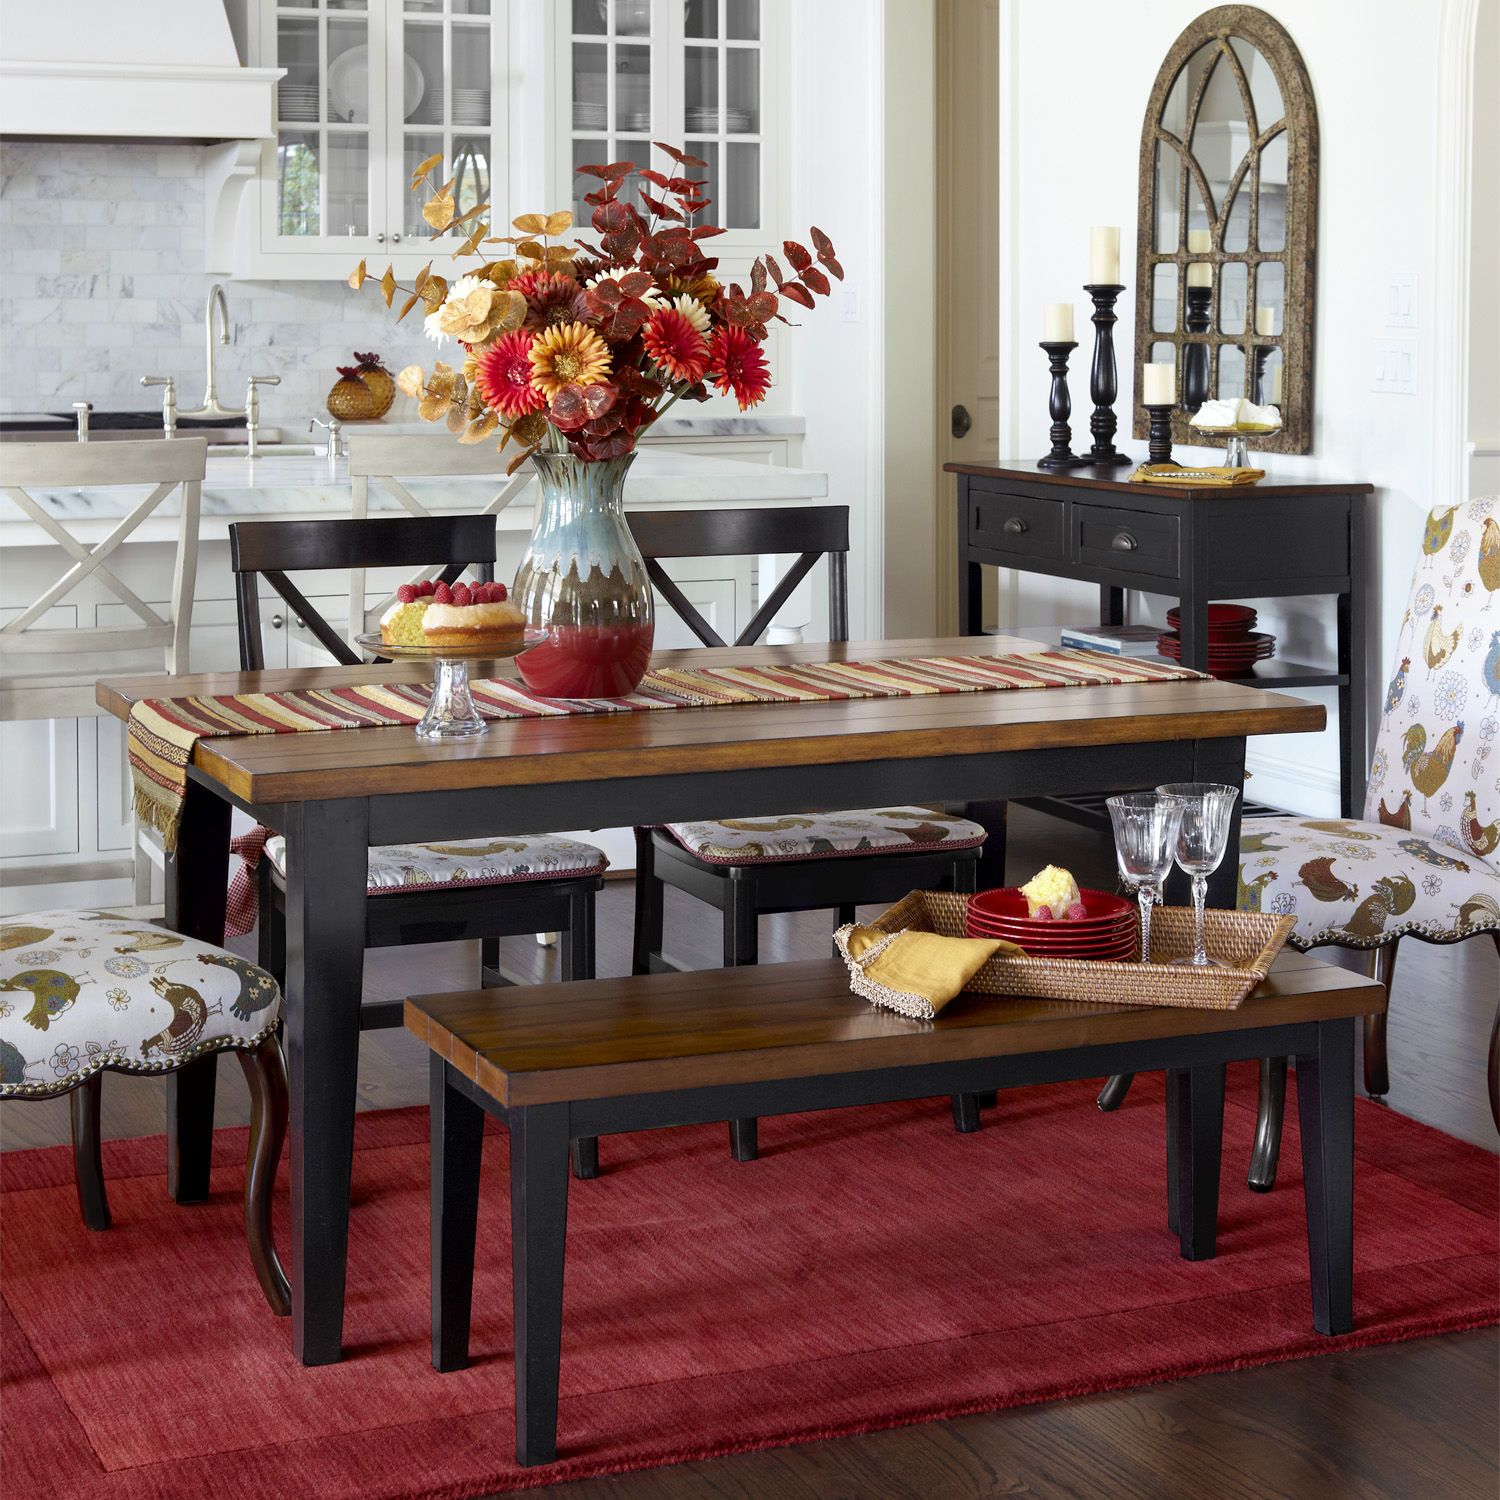 Ordinaire Carmichael Dining Table   Rubbed Black | Pier 1 Imports